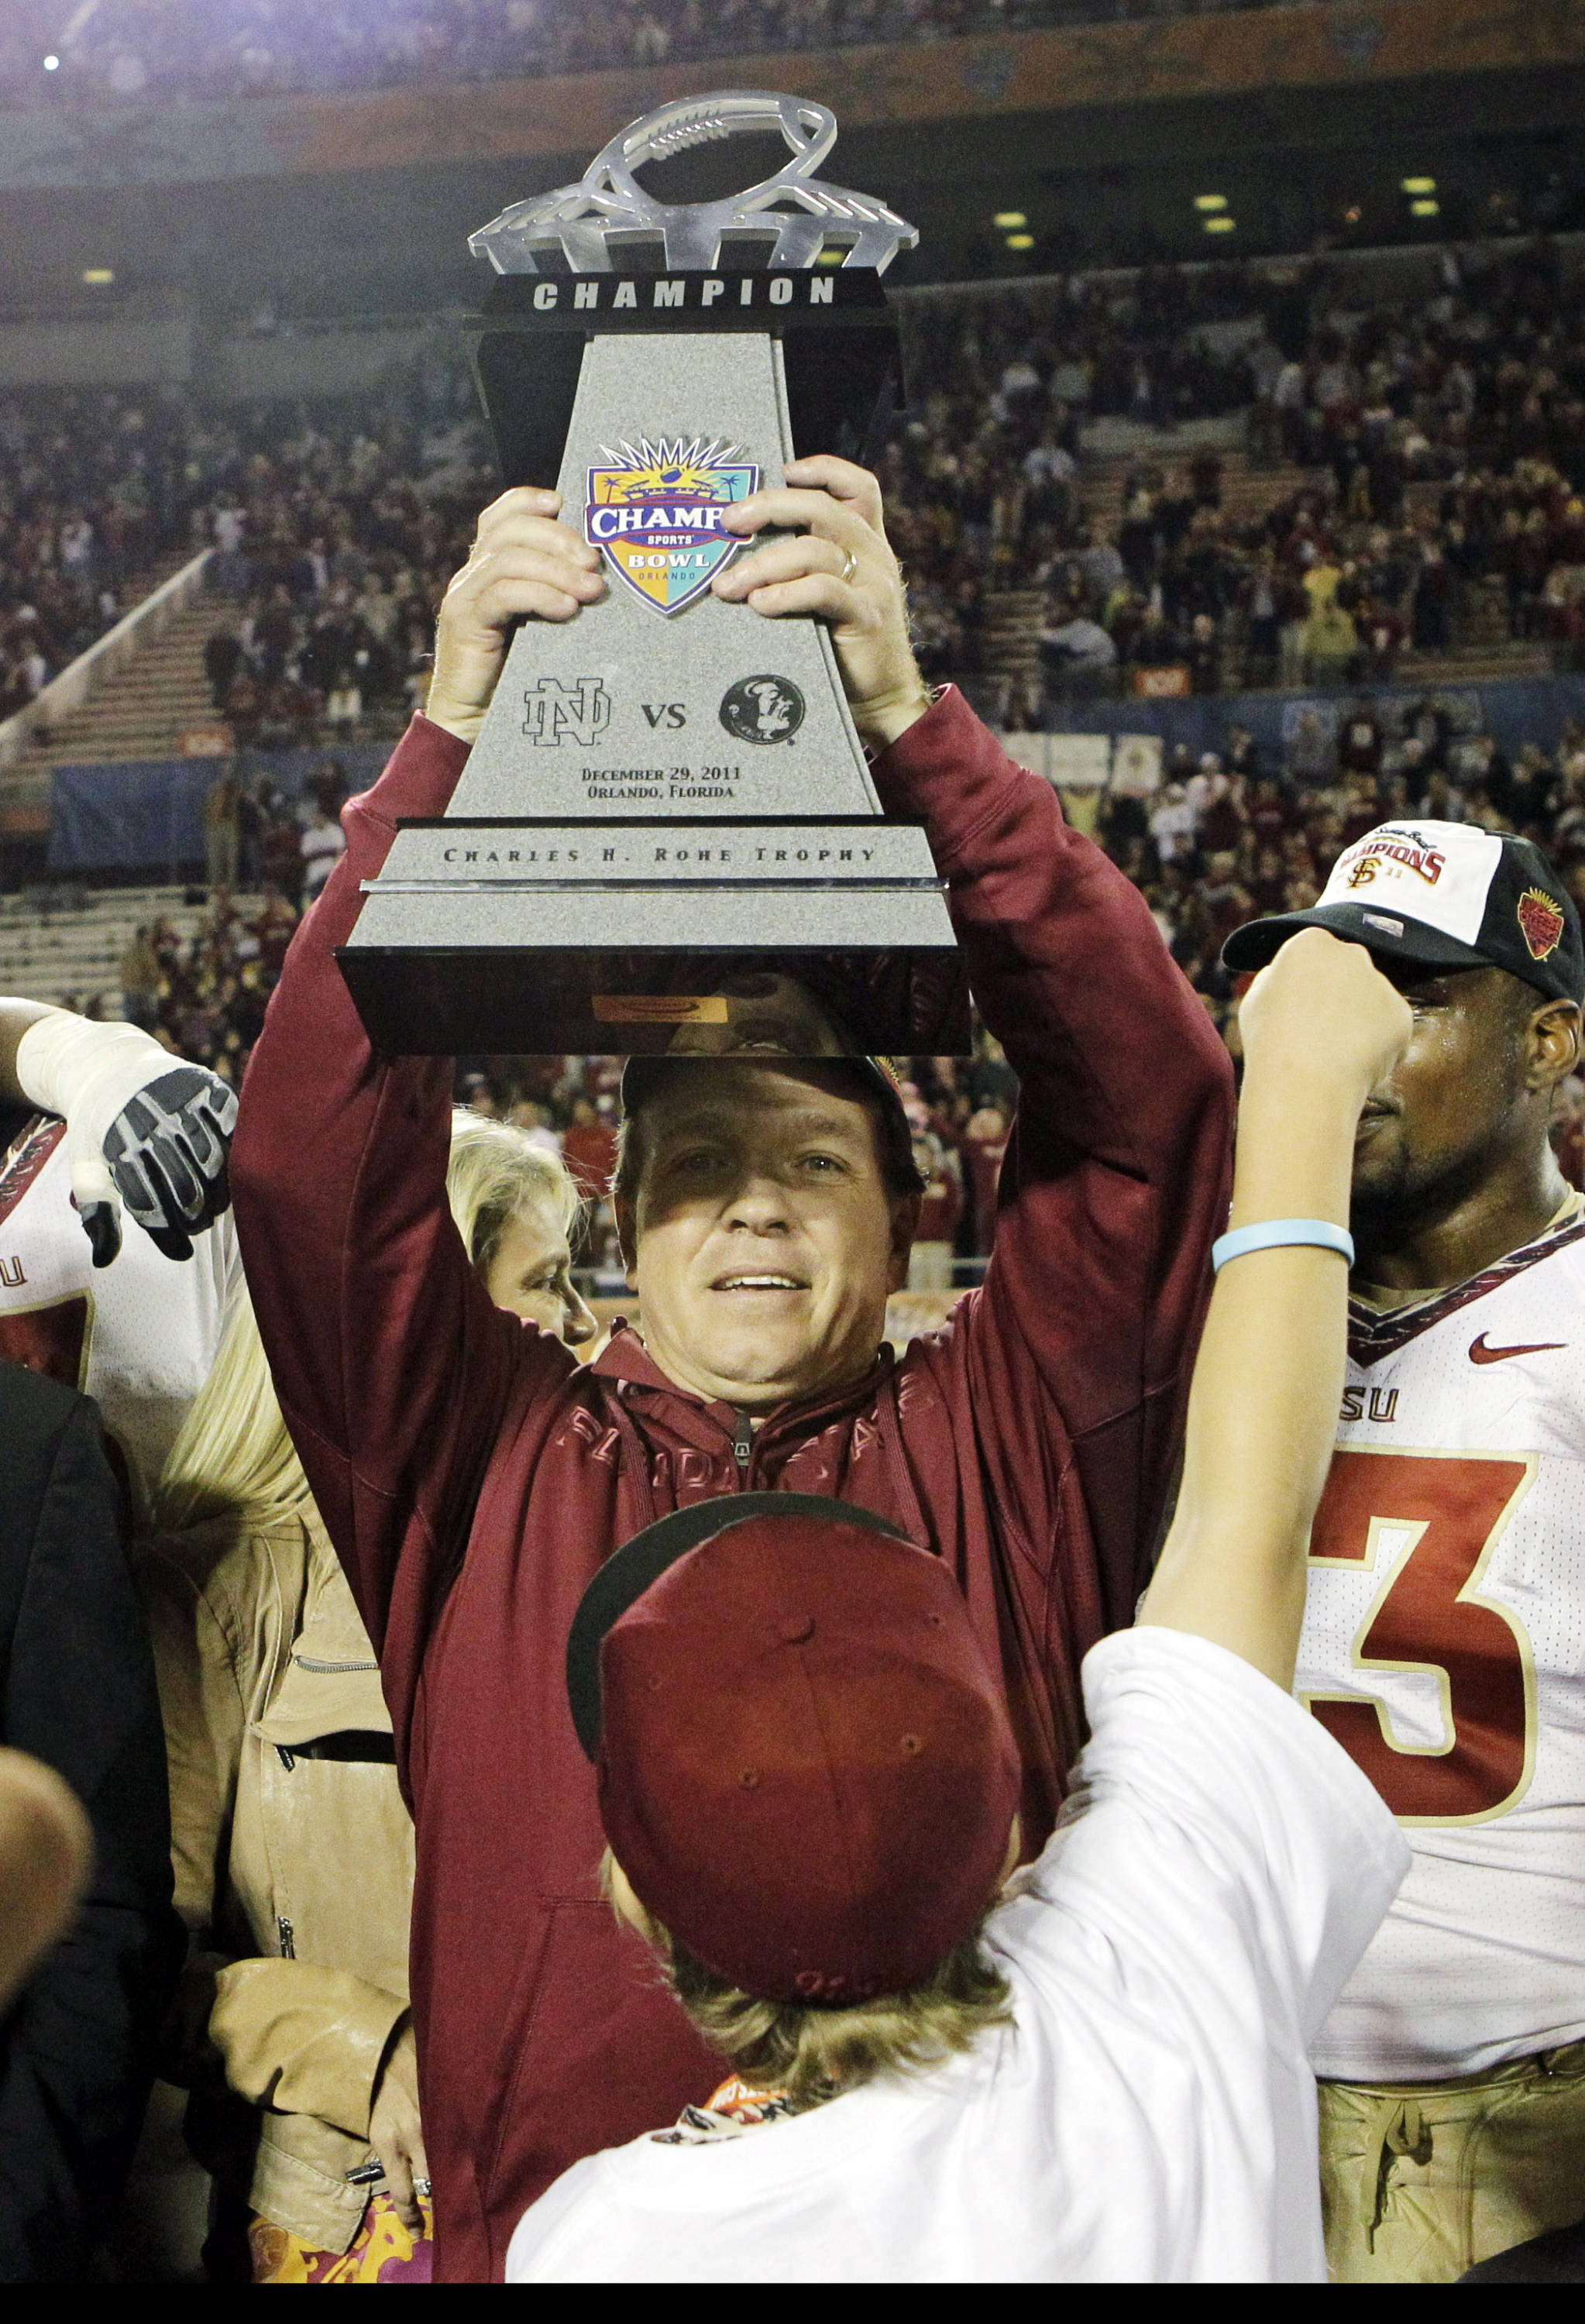 Florida State head coach Jimbo Fisher holds up the championship trophy after defeating Notre Dame 18-14 in the Champs Sports Bowl. (AP Photo/John Raoux)